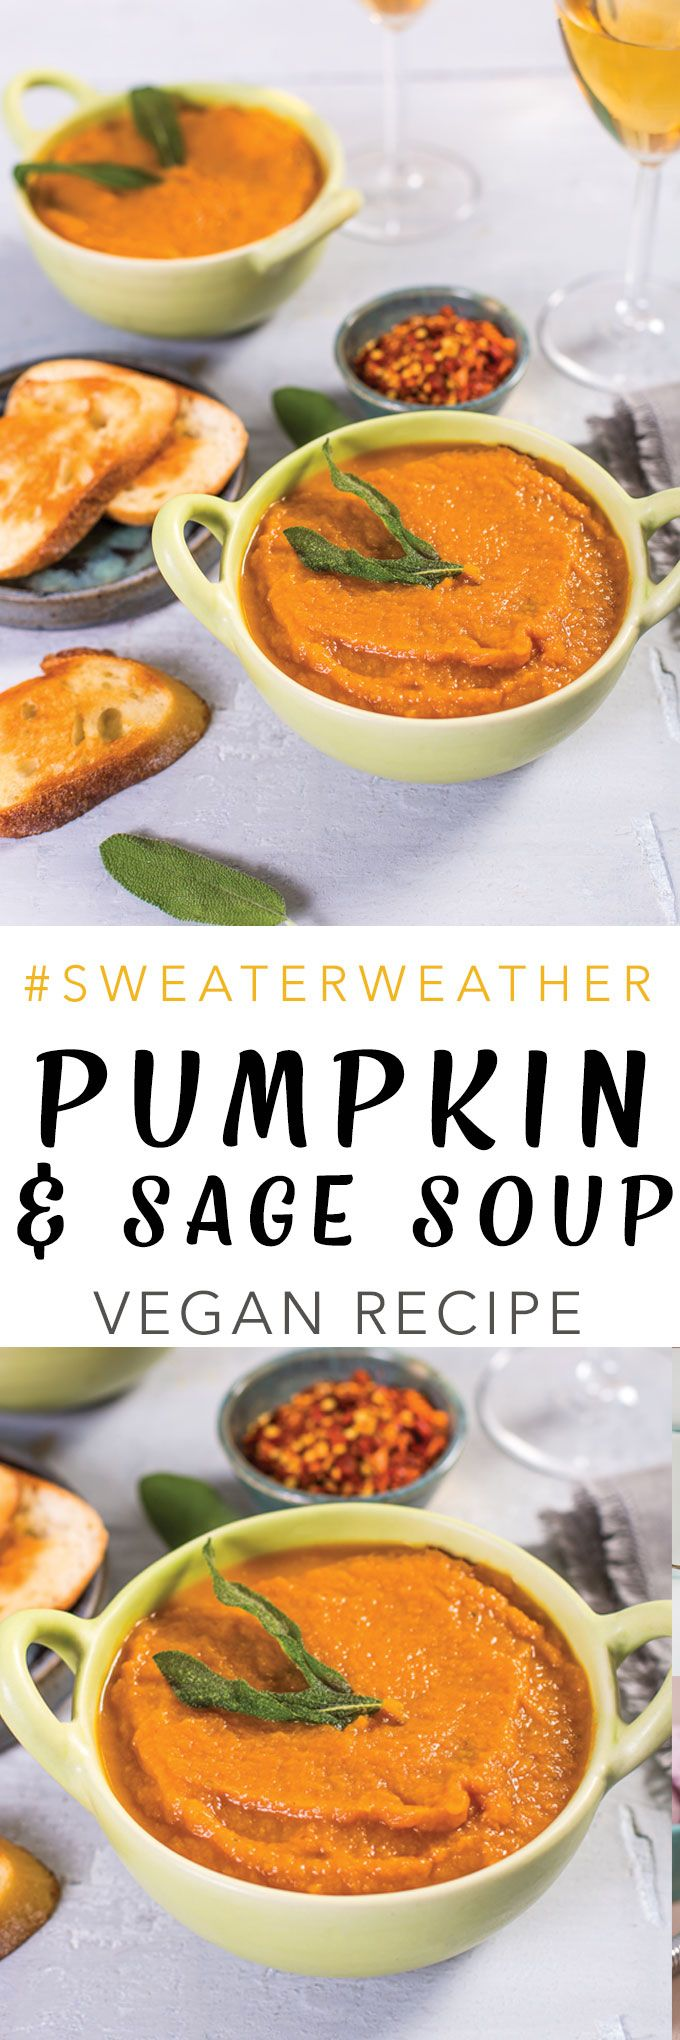 A lovely and hearty pumpkin sage soup to warm you from the inside out. Pumpkin soup made with carrots, potatoes, sage and garlic. This #SweaterWeather Pumpkin Sage Soup is my...